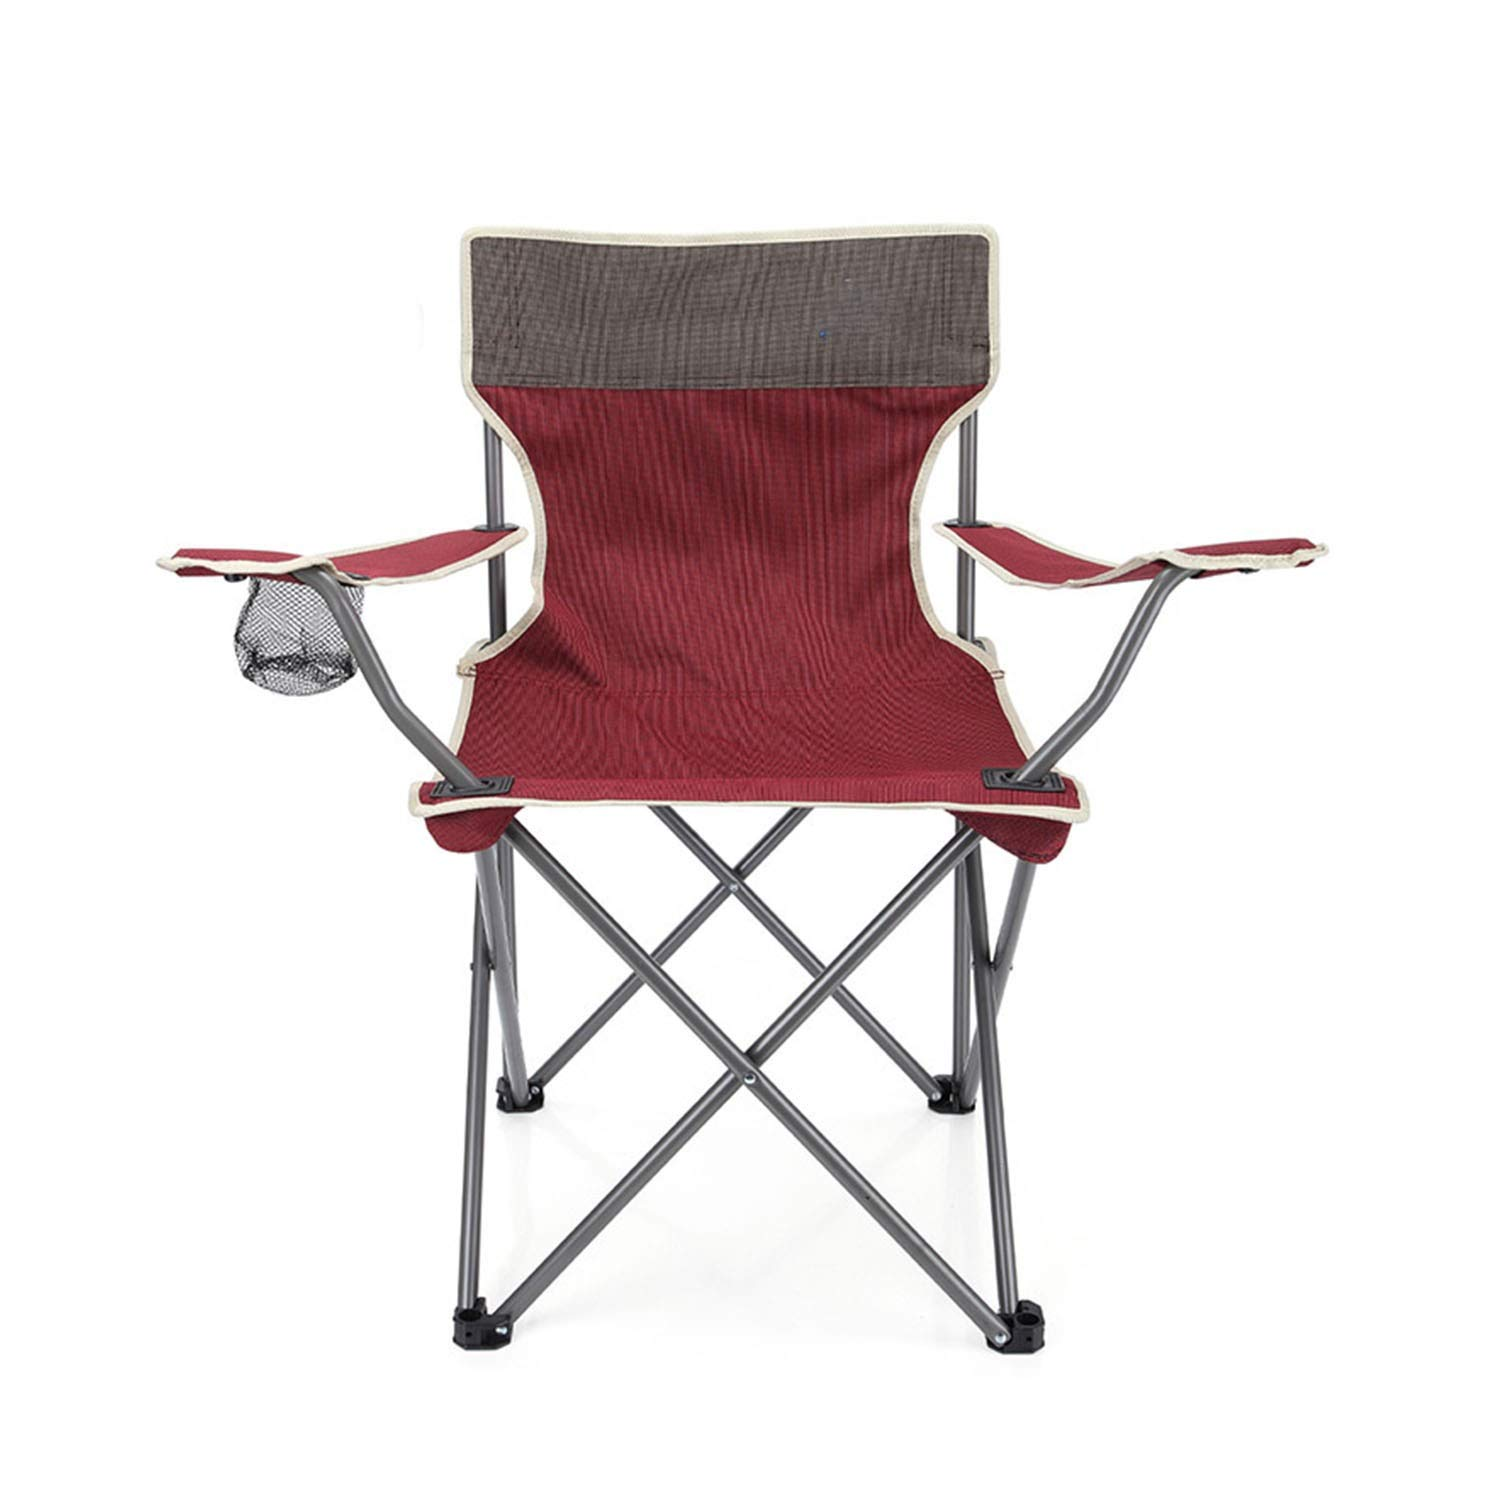 YOZOOE Portable Beach Chair with Back Storage Bag, Outdoor Folding Chair,Fishing/Rest Camping Supplies (Color : Green) by YOZOOE